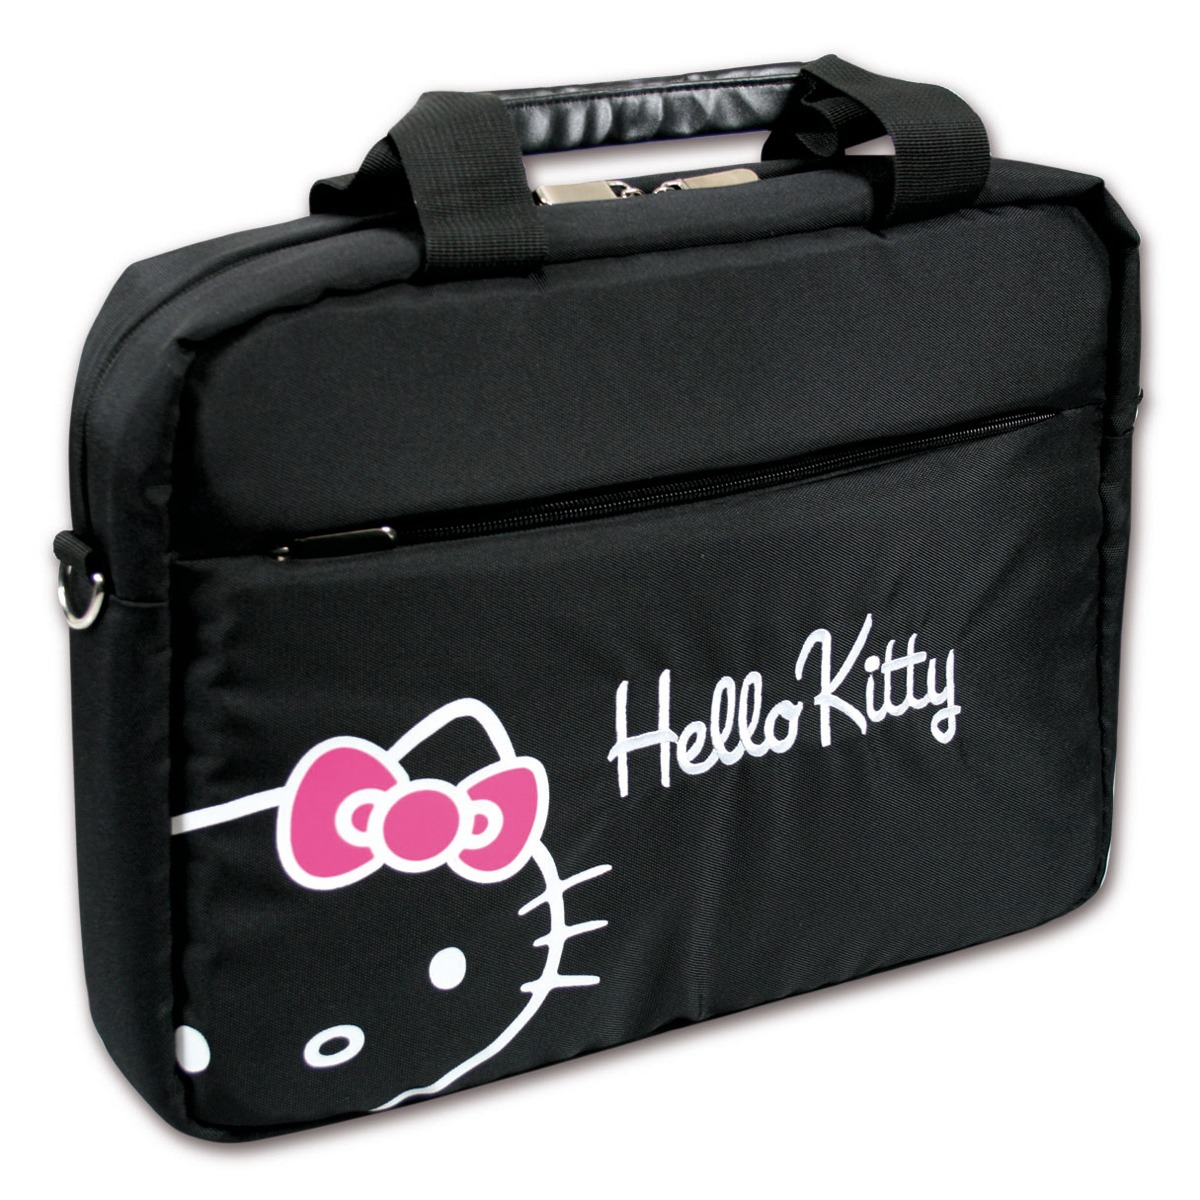 port designs hello kitty bag 15 6 noir hklo16bl achat vente sac sacoche housse sur. Black Bedroom Furniture Sets. Home Design Ideas